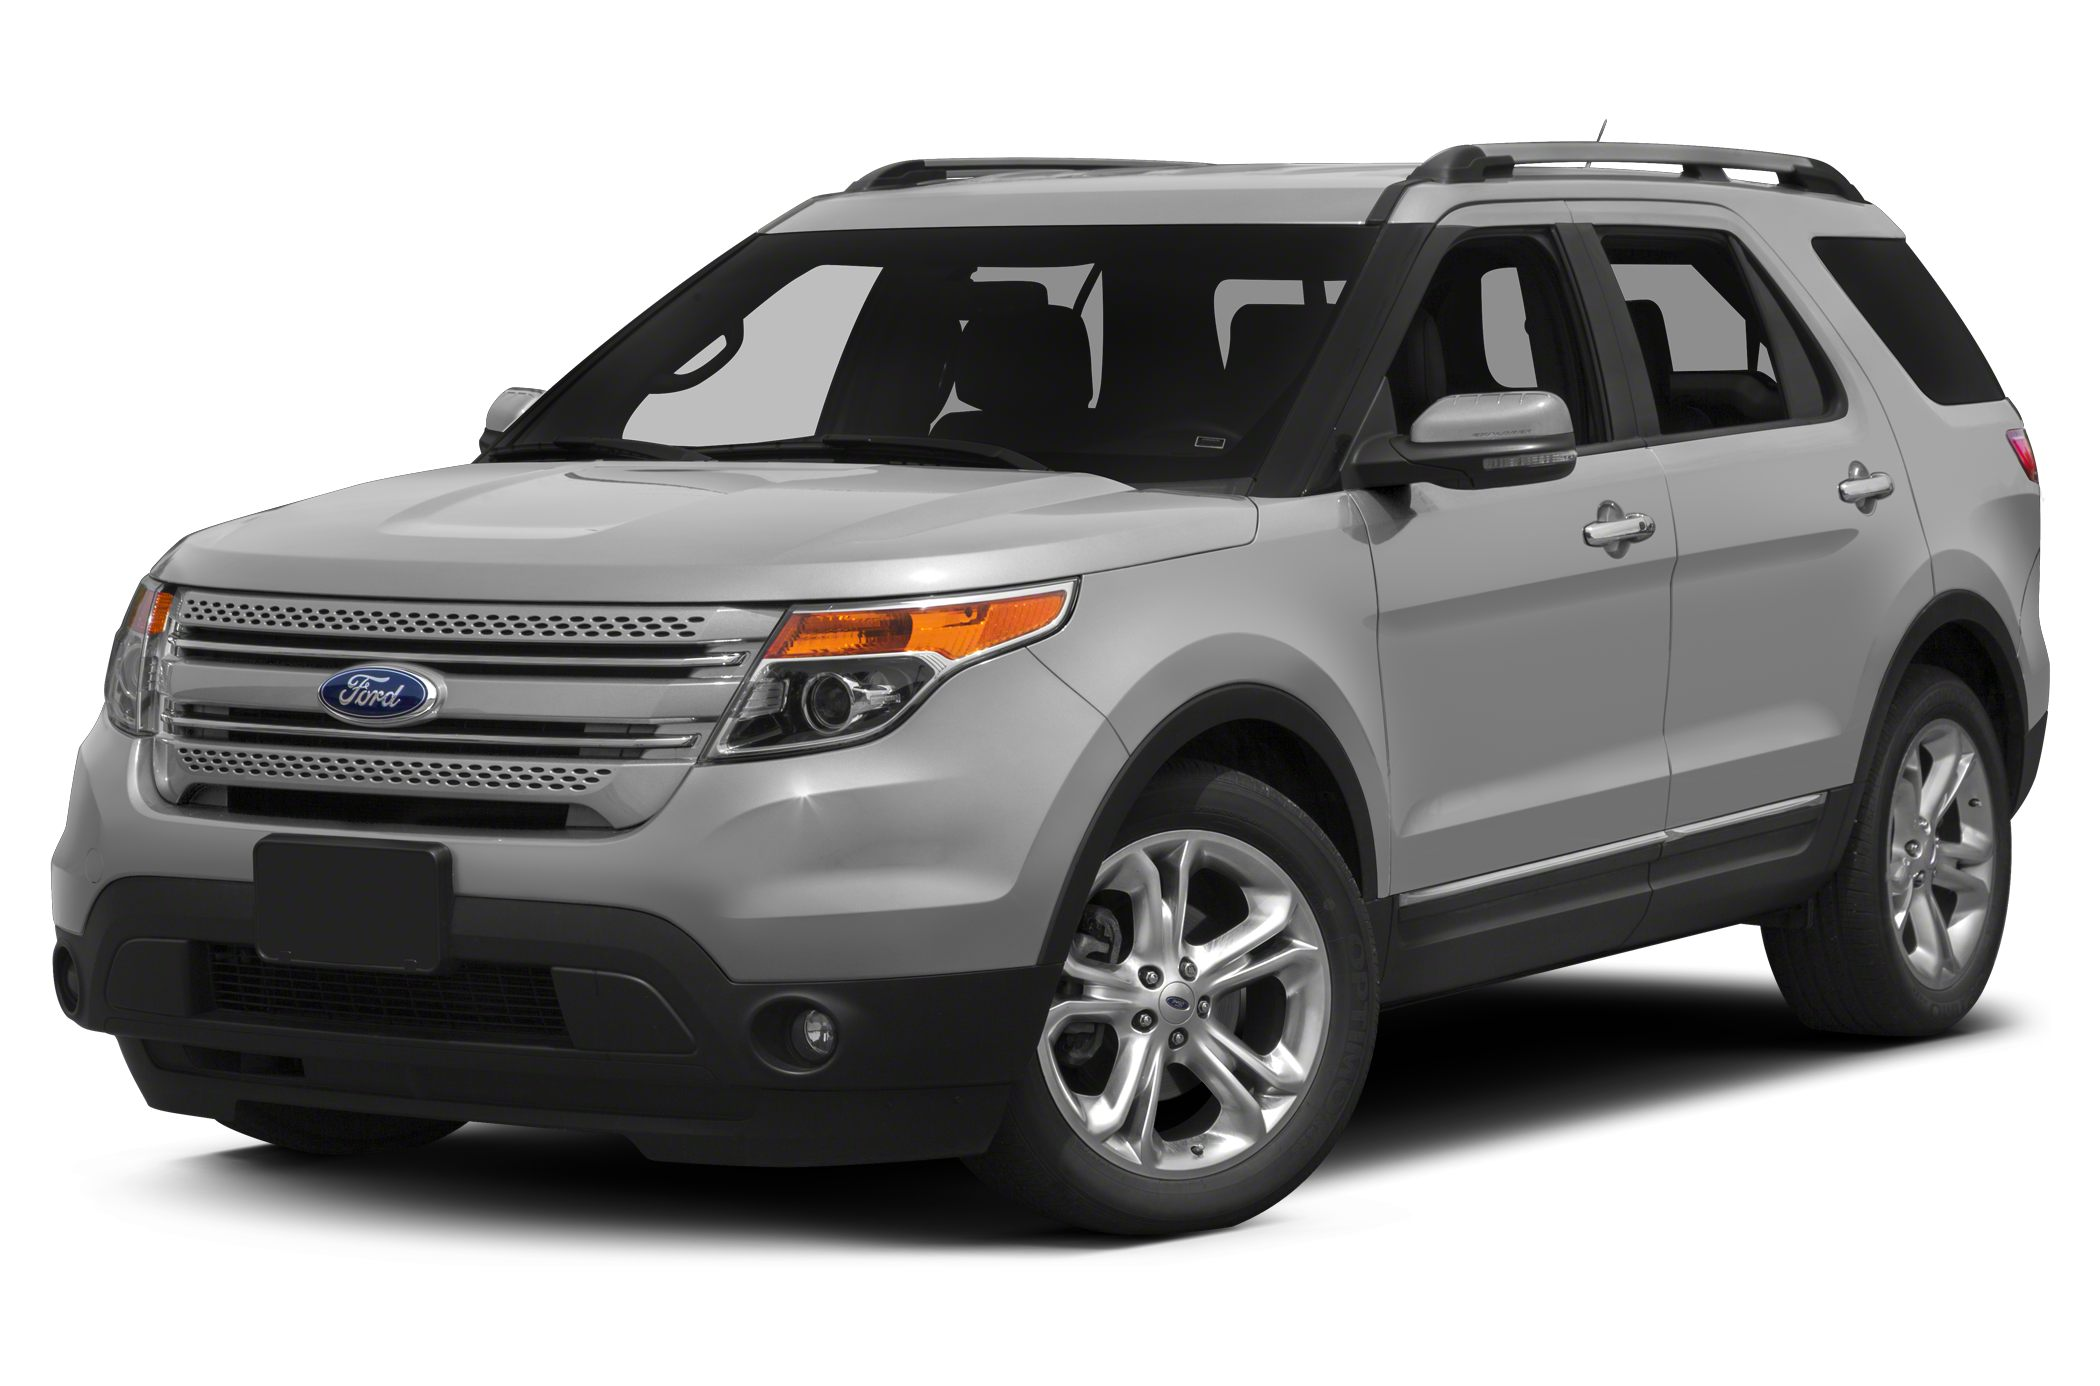 2015 Ford Explorer Limited SUV for sale in McHenry for $49,680 with 2 miles.